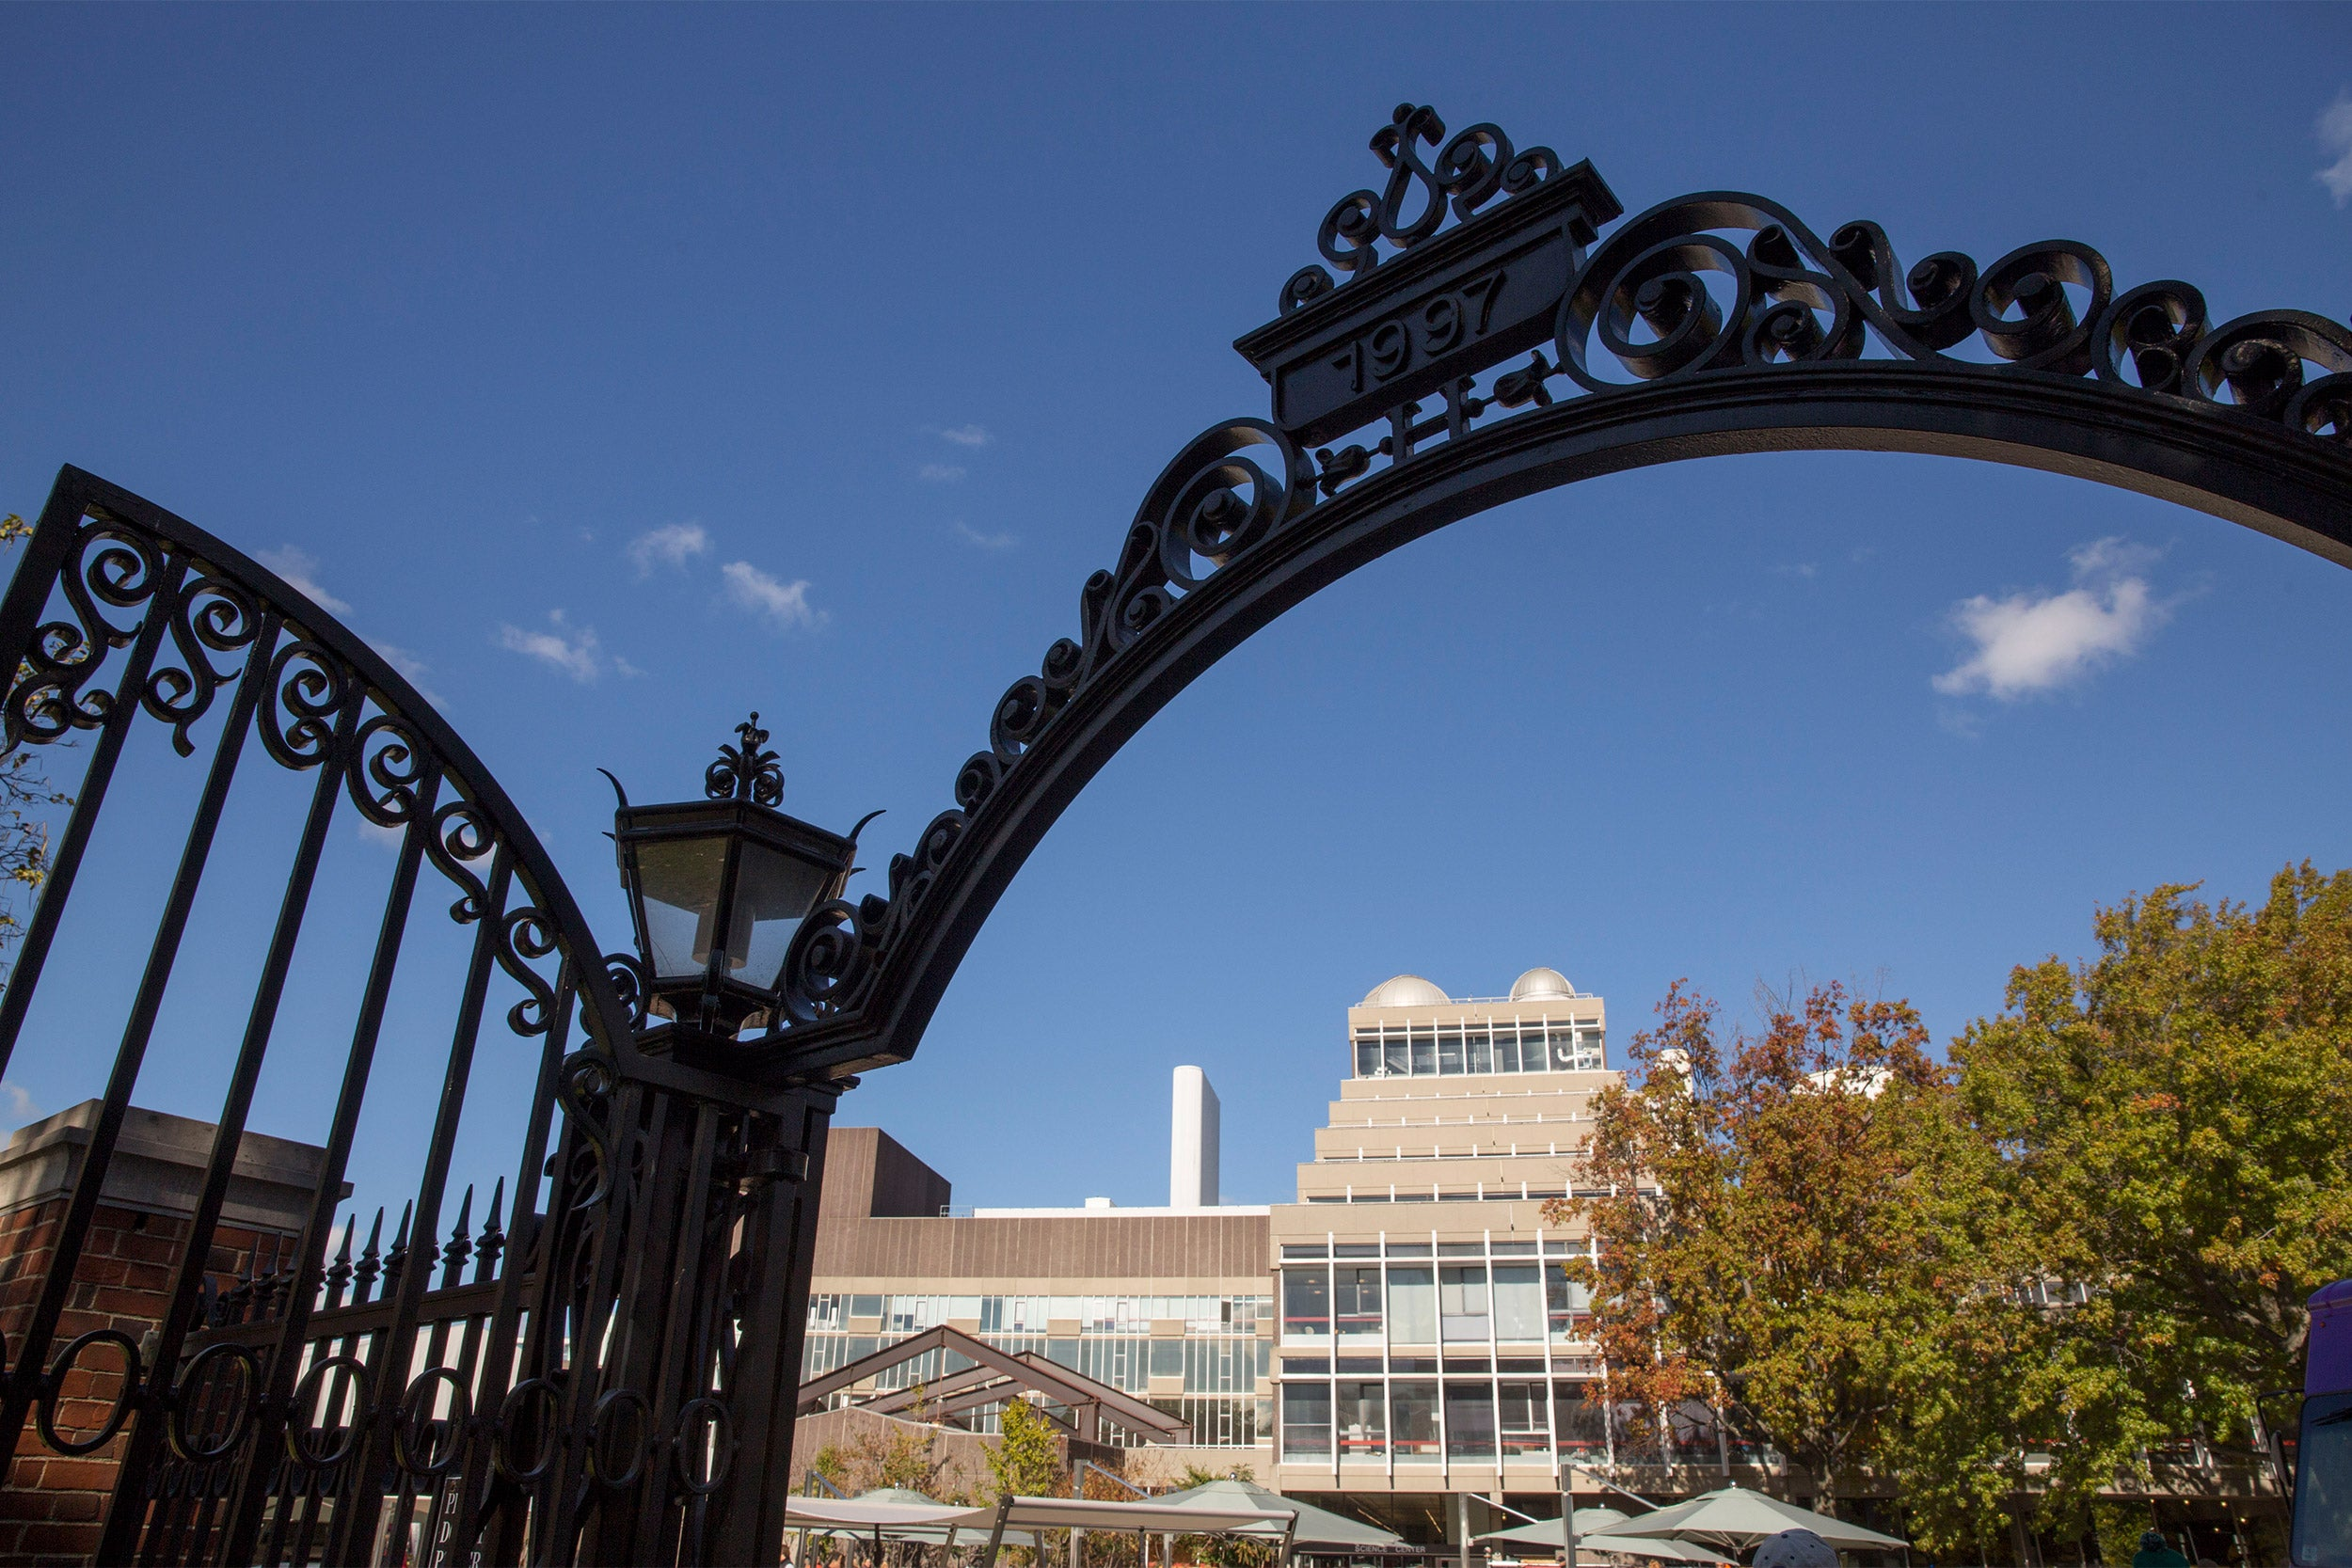 The Science Center at Harvard